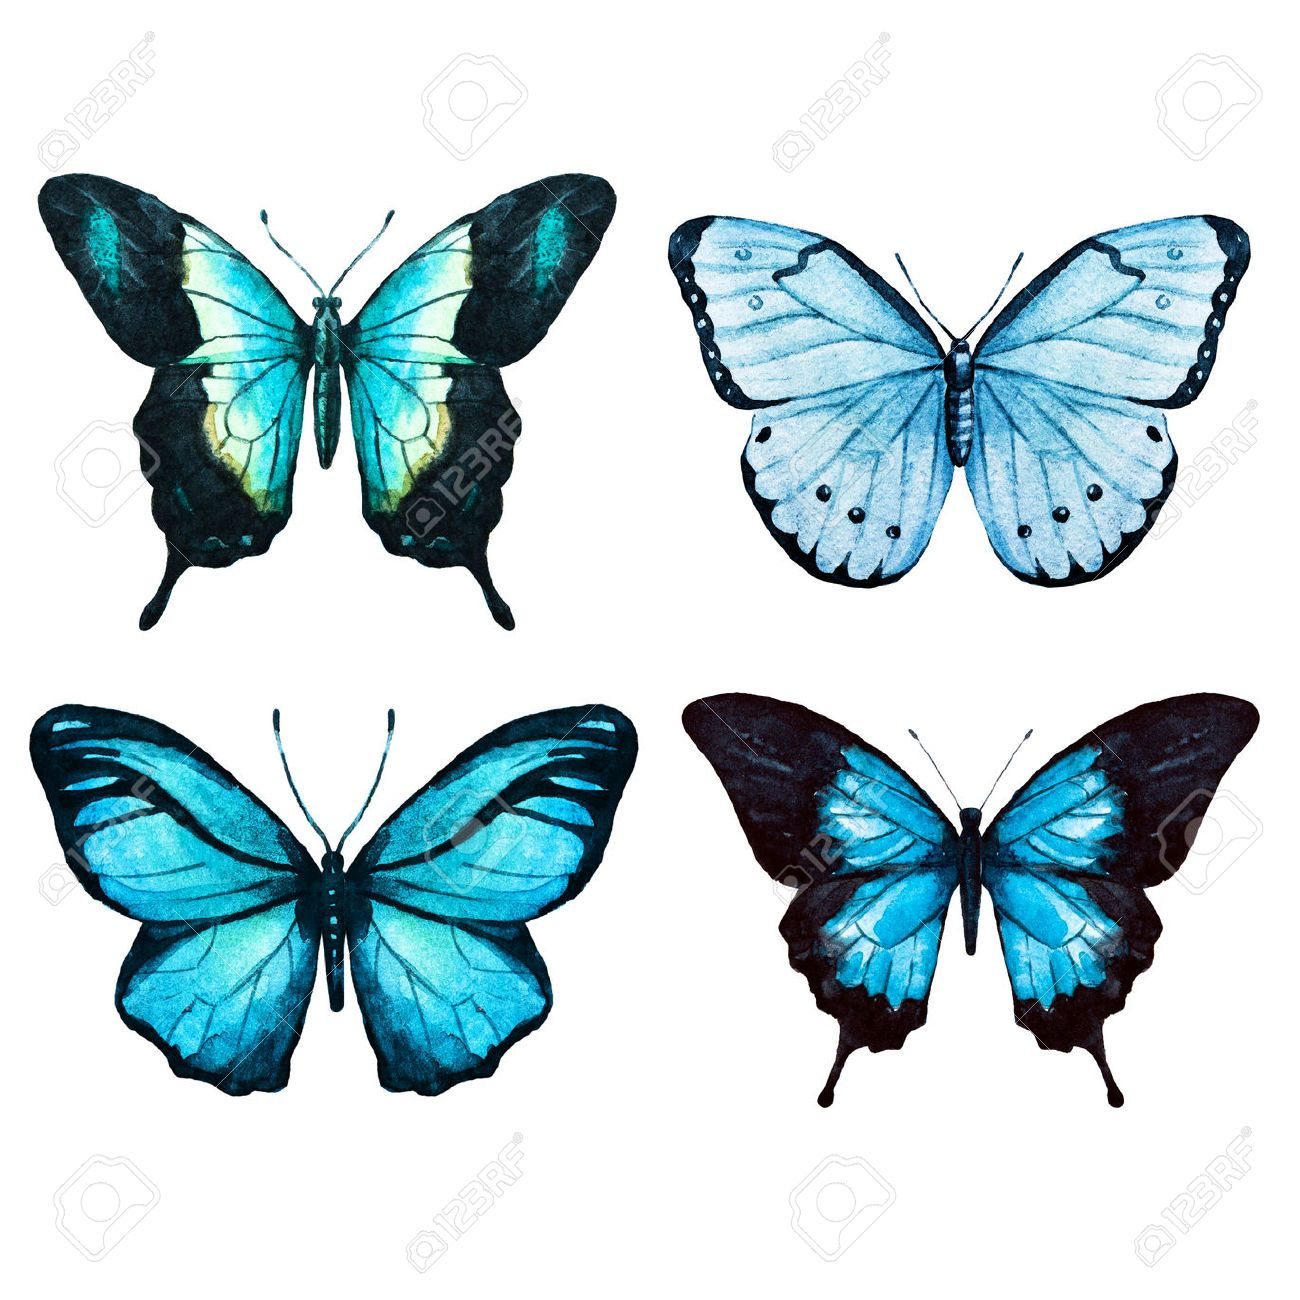 stock photo in 2019 tattoo butterfly schmetterling. Black Bedroom Furniture Sets. Home Design Ideas